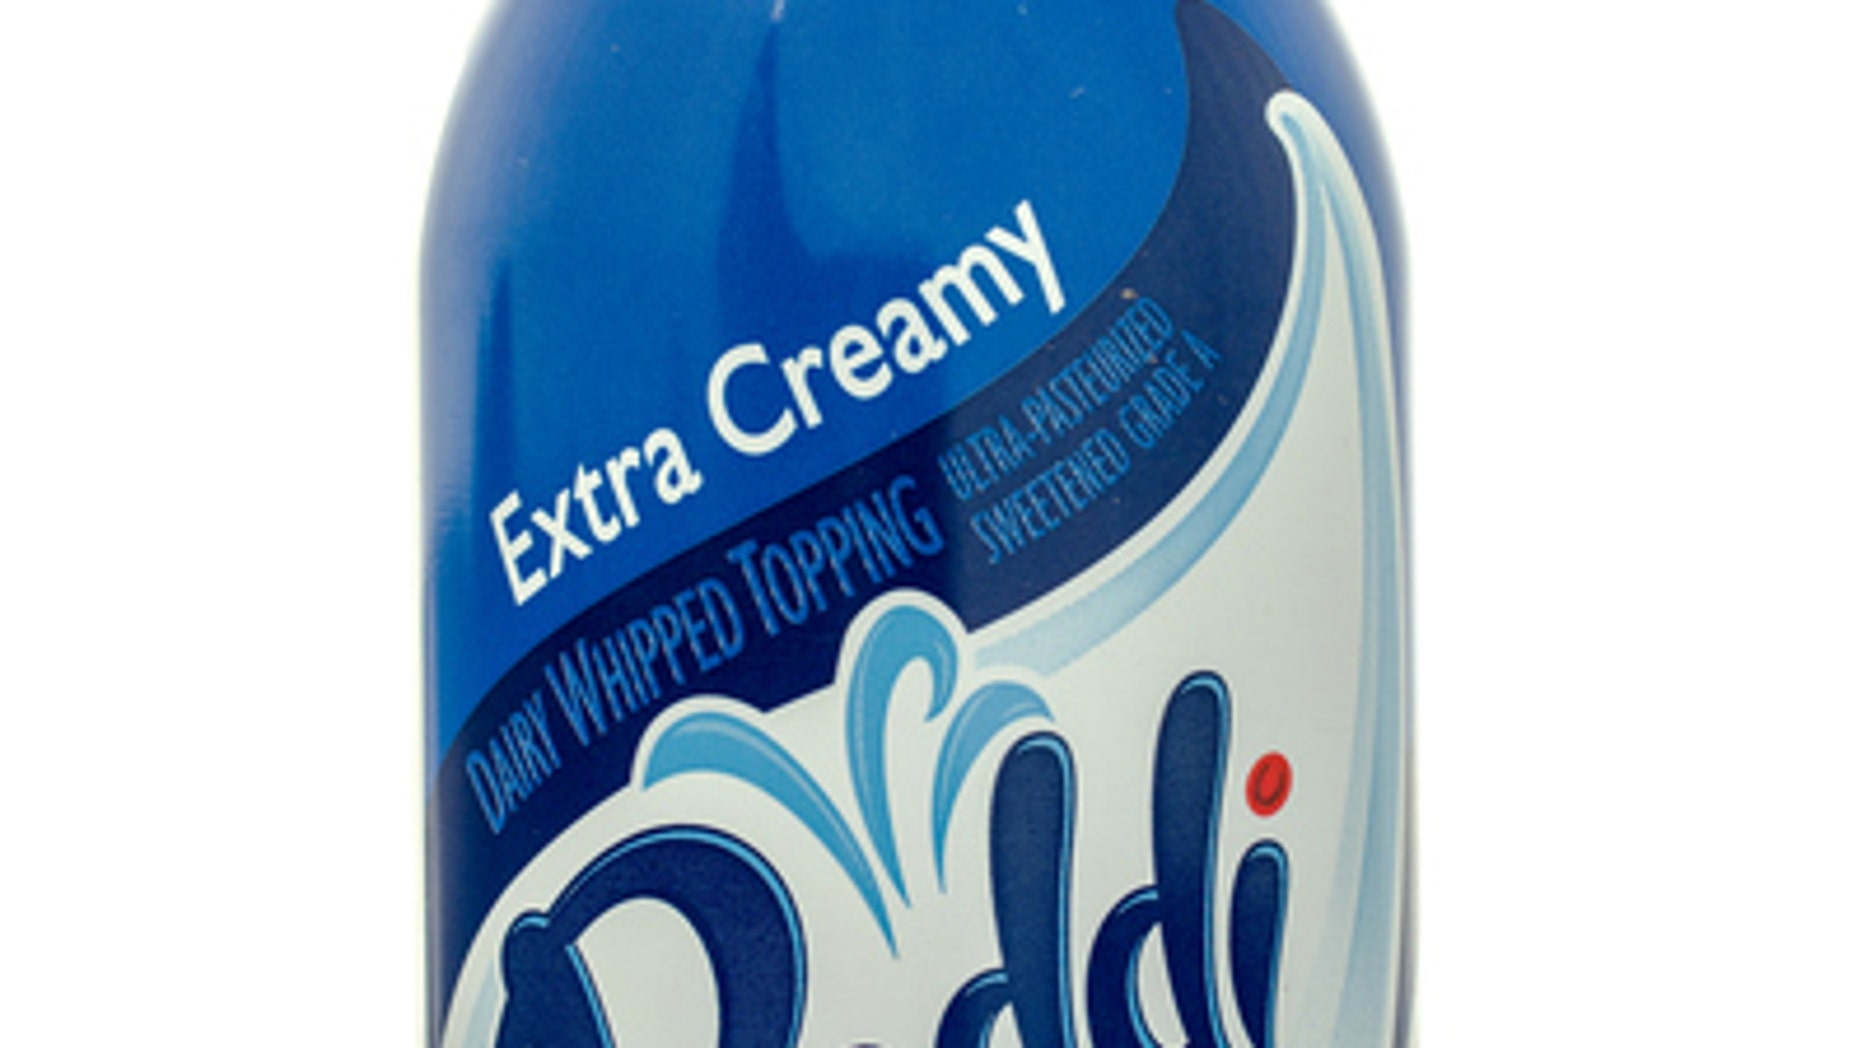 Can't find your favorite canned whipped cream? You're not alone this holiday season.